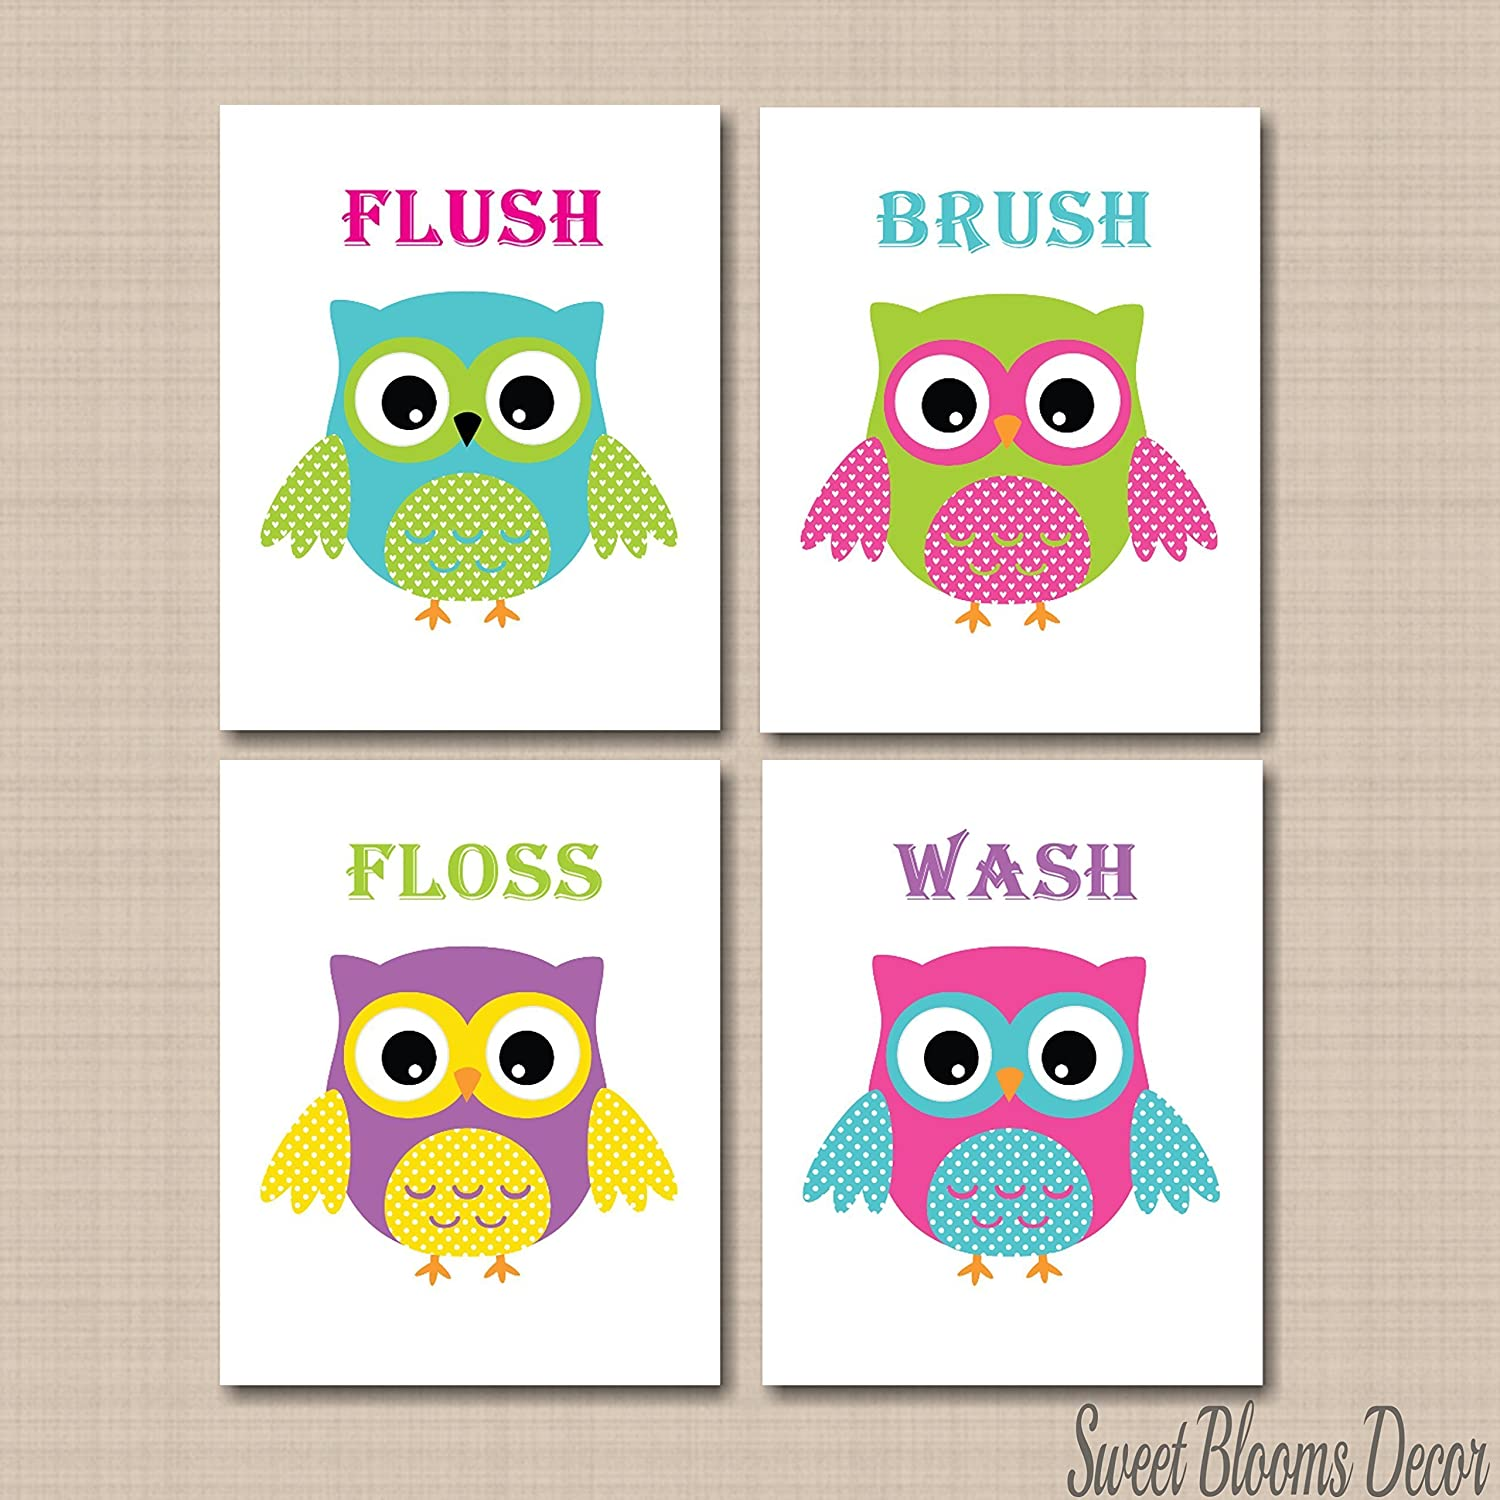 Bathroom wall art for kids - Amazon Com Owl Bathroom D Cor Owl Bathroom Wall Art Owl Wall Art Owl Kids Bathroom Wall Art Owl Theme Bathroom Wash Brush Flush Floss Unframed Set Of 4